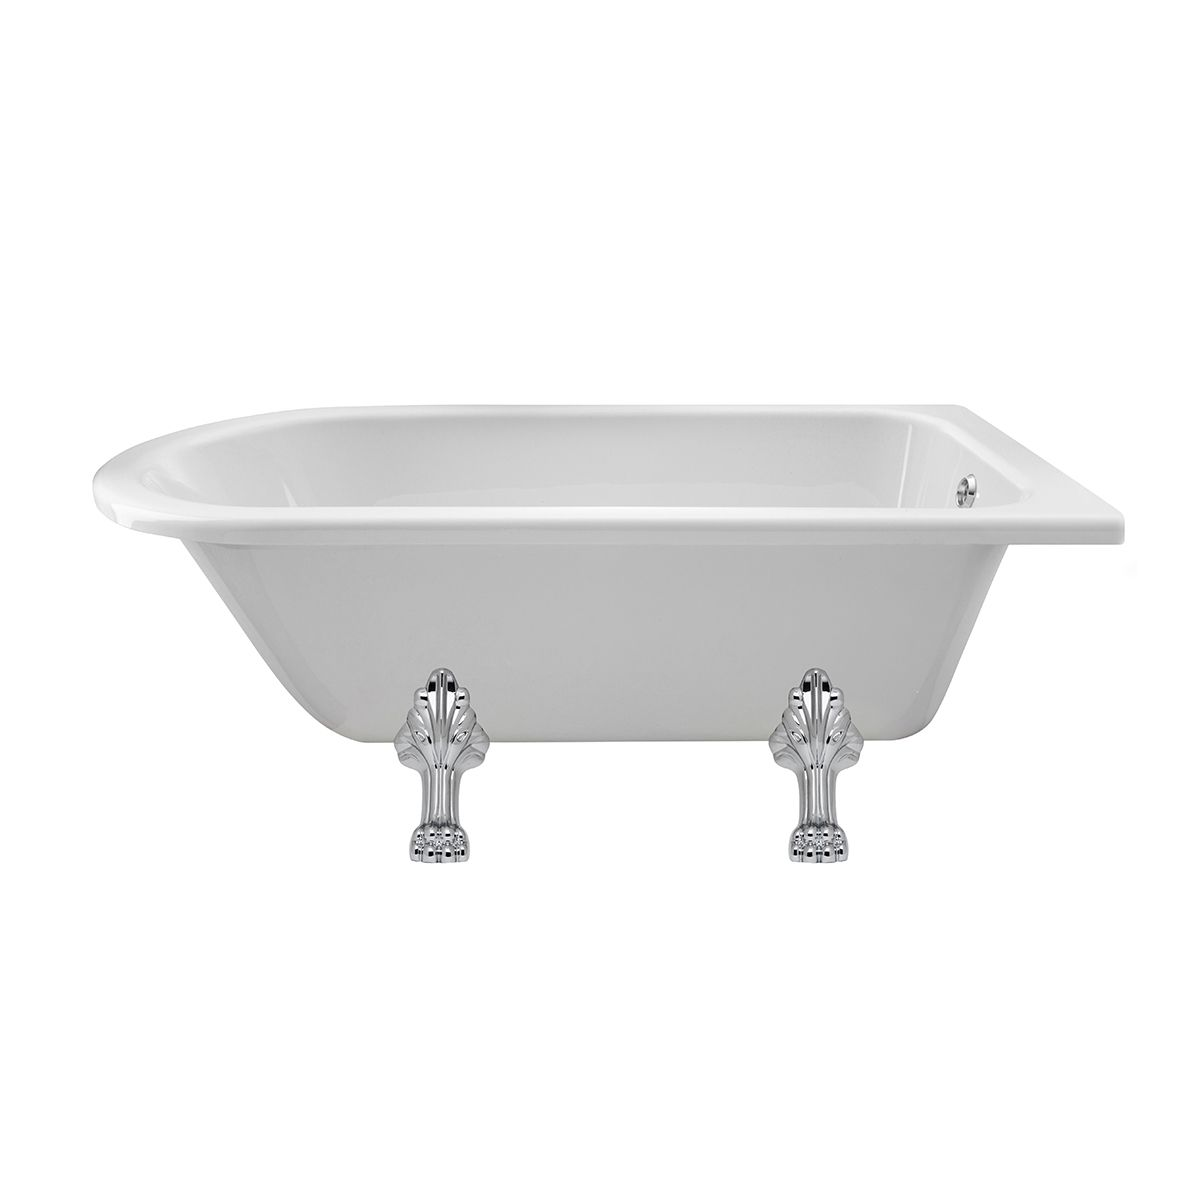 Winterburn Roll Top Bath with Pride Feet